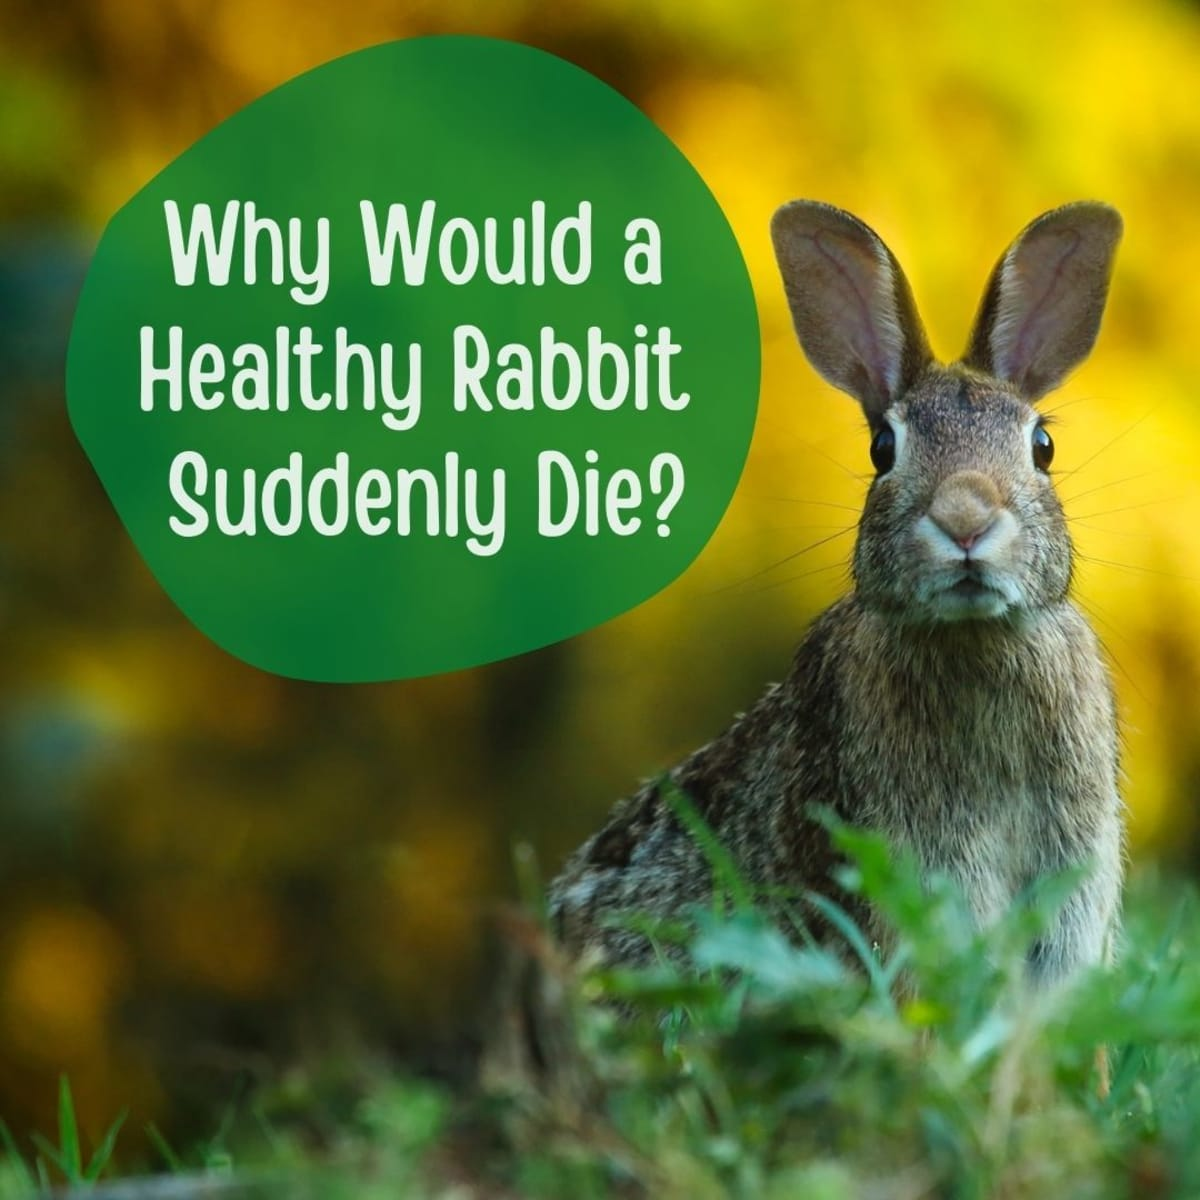 Common Causes Of Sudden Death In Healthy Rabbits Pethelpful By Fellow Animal Lovers And Experts